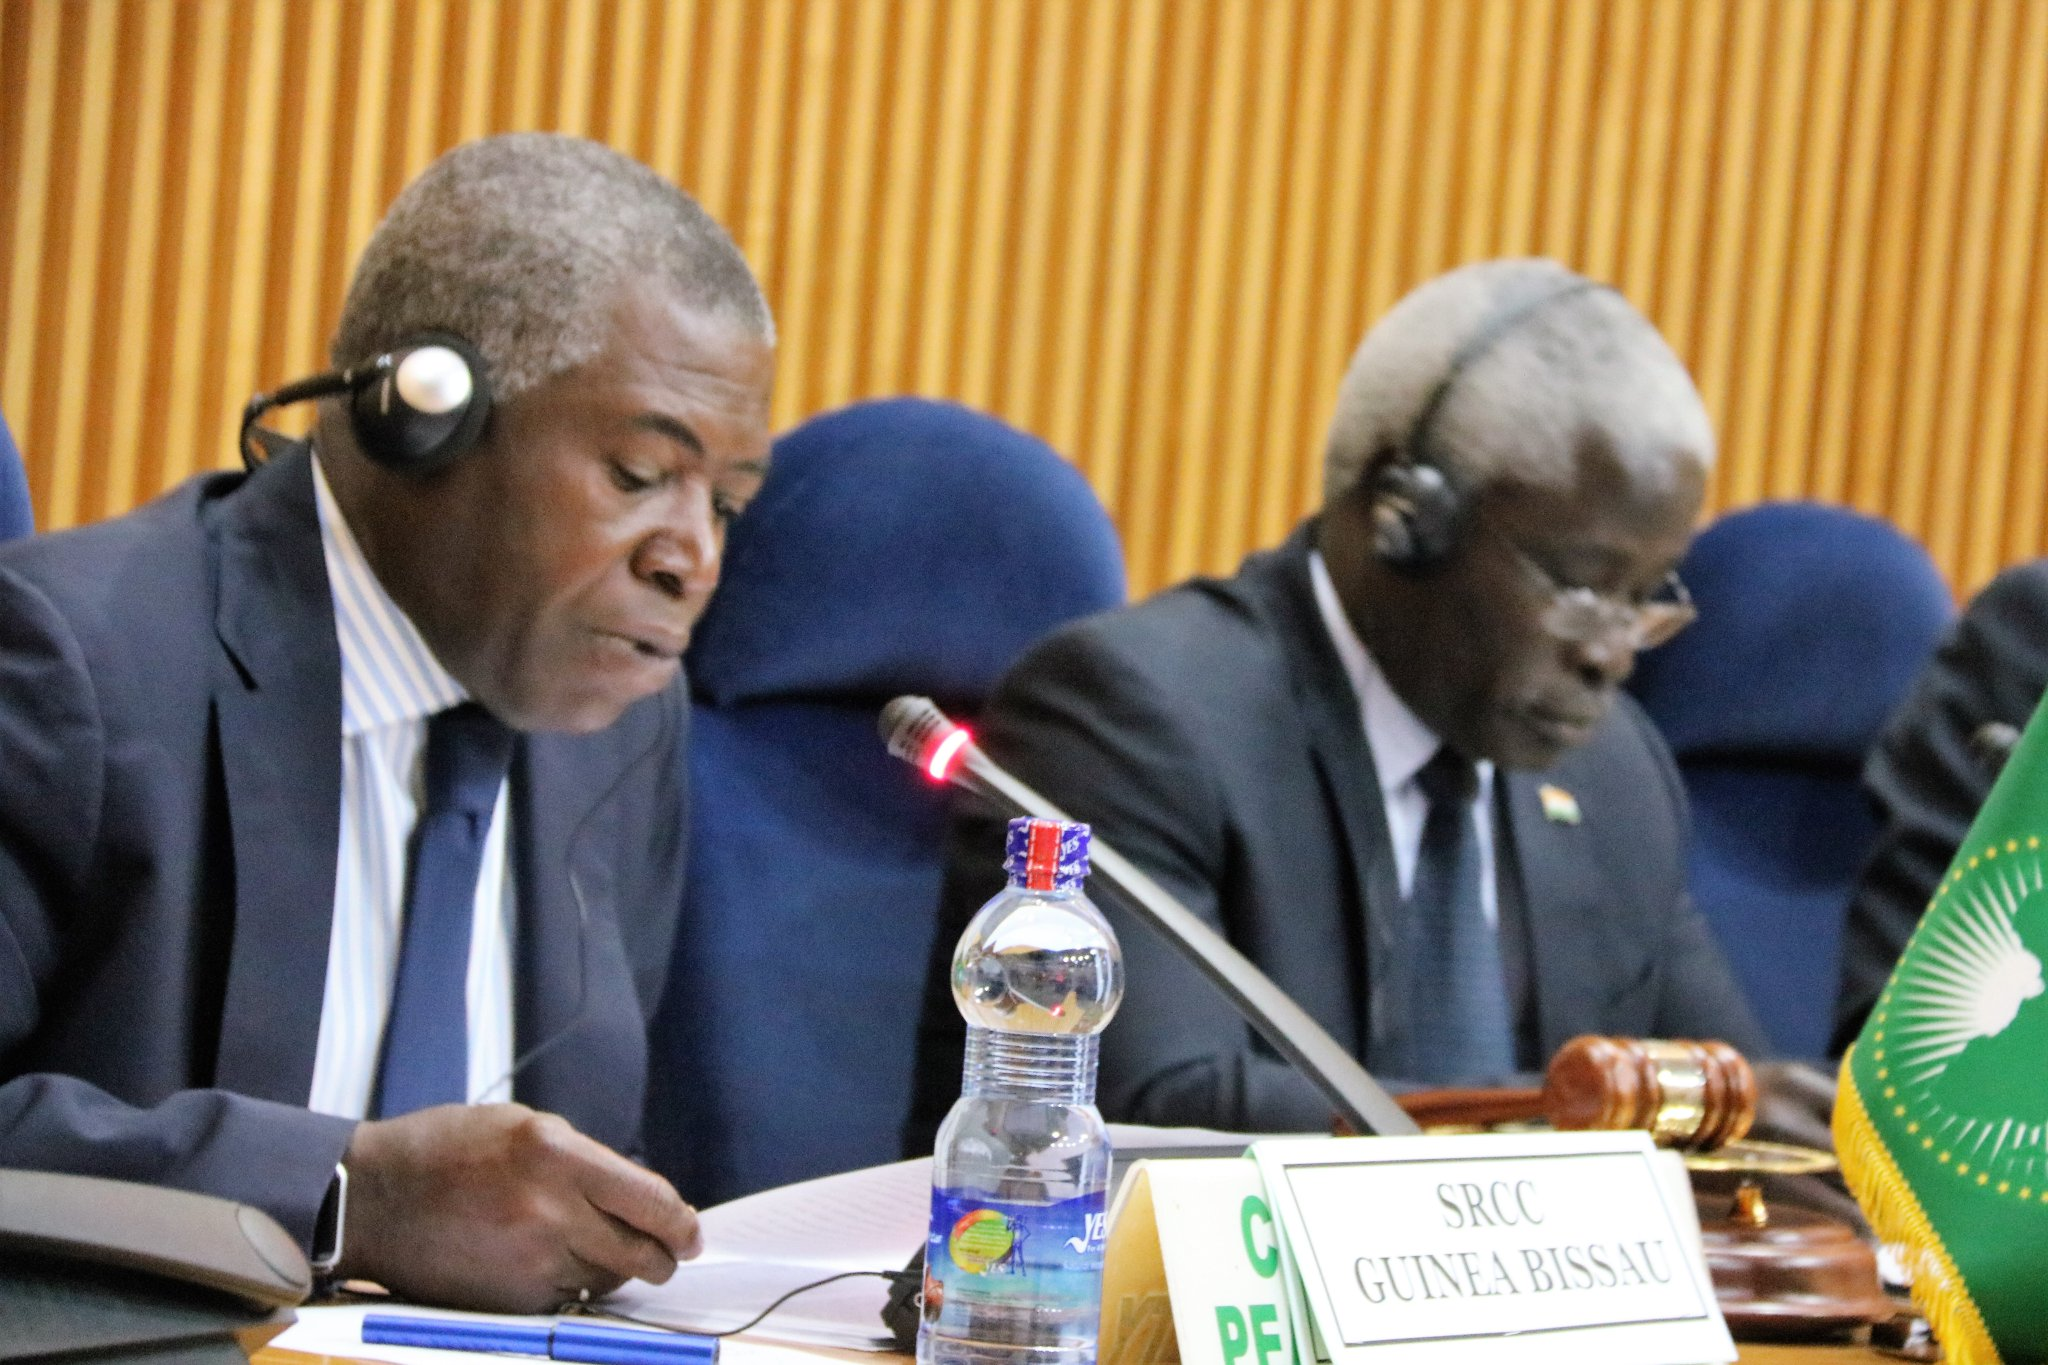 AU Rep. in Guinea Bissau Amb. Ovidio Pequeno briefs PSC on the situation in Guinea Bissau